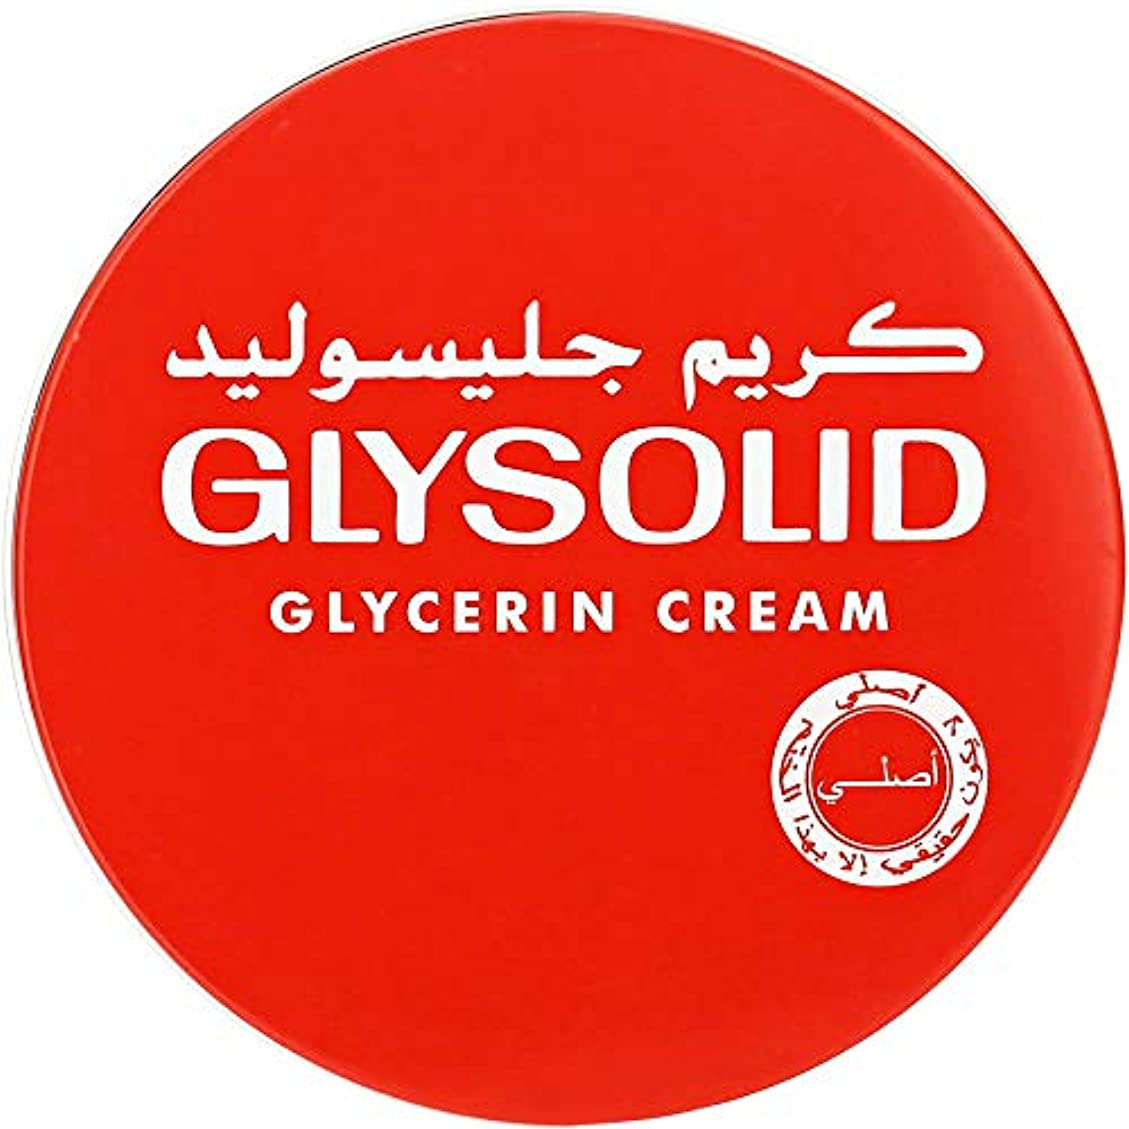 出血おいしいわがままGlysolid Cream Face Moisturizers For Dry Skin Hands Feet Elbow Body Softening With Glycerin Keeping Your Skin...